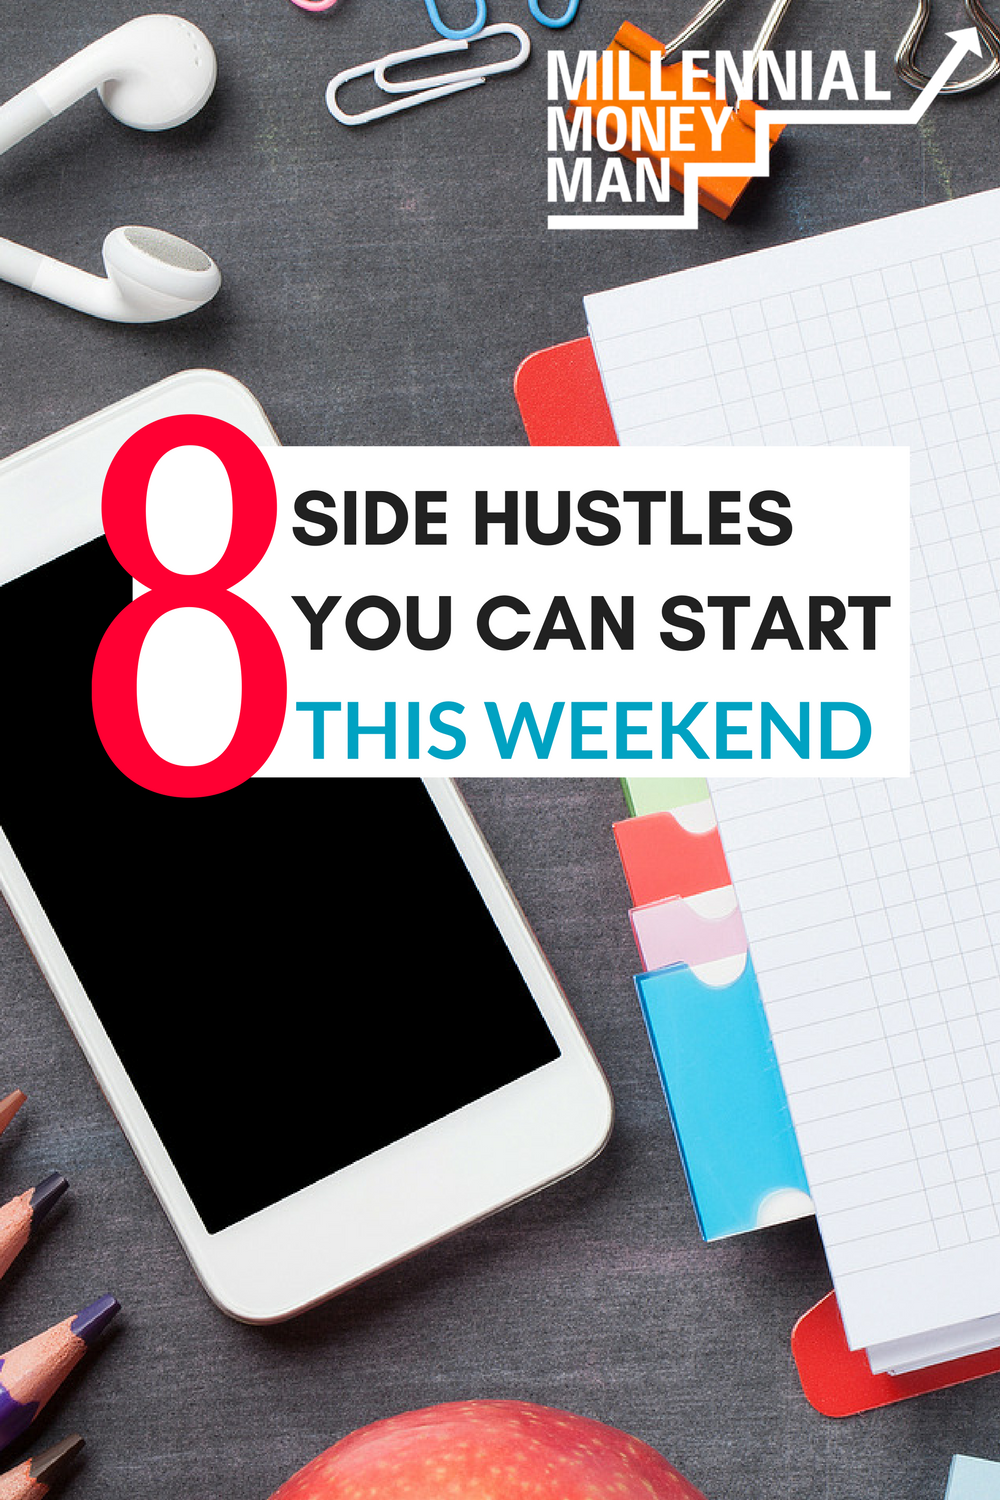 Check out these 8 side hustle ideas to get started making extra cash in your spare time. #makemoney #sidehustle